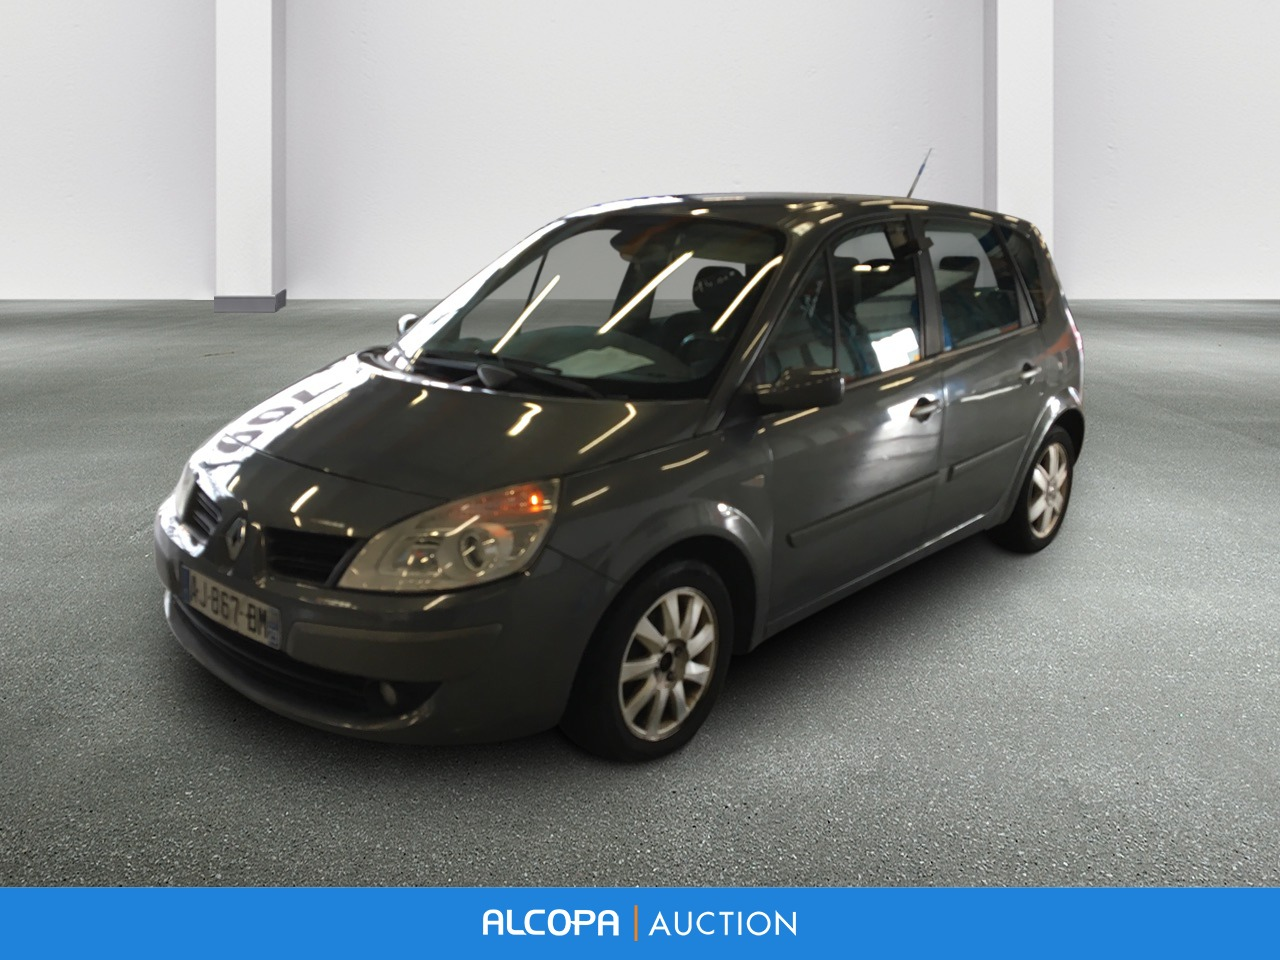 renault scenic ii scenic 1 5 dci 105 fap eco2 exception rennes alcopa auction. Black Bedroom Furniture Sets. Home Design Ideas